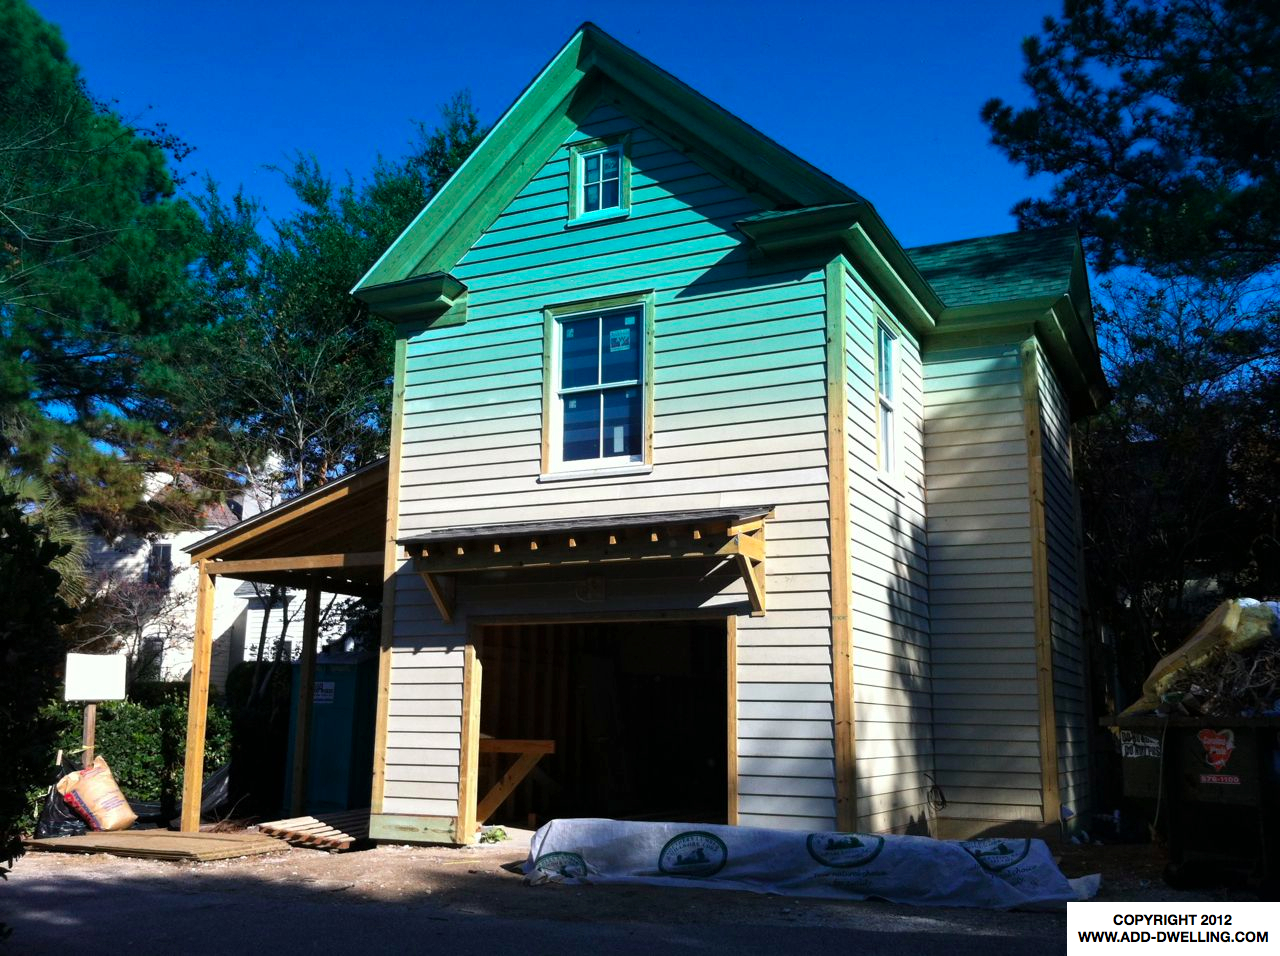 Carriage House under Construction in I'on Mount Pleasant